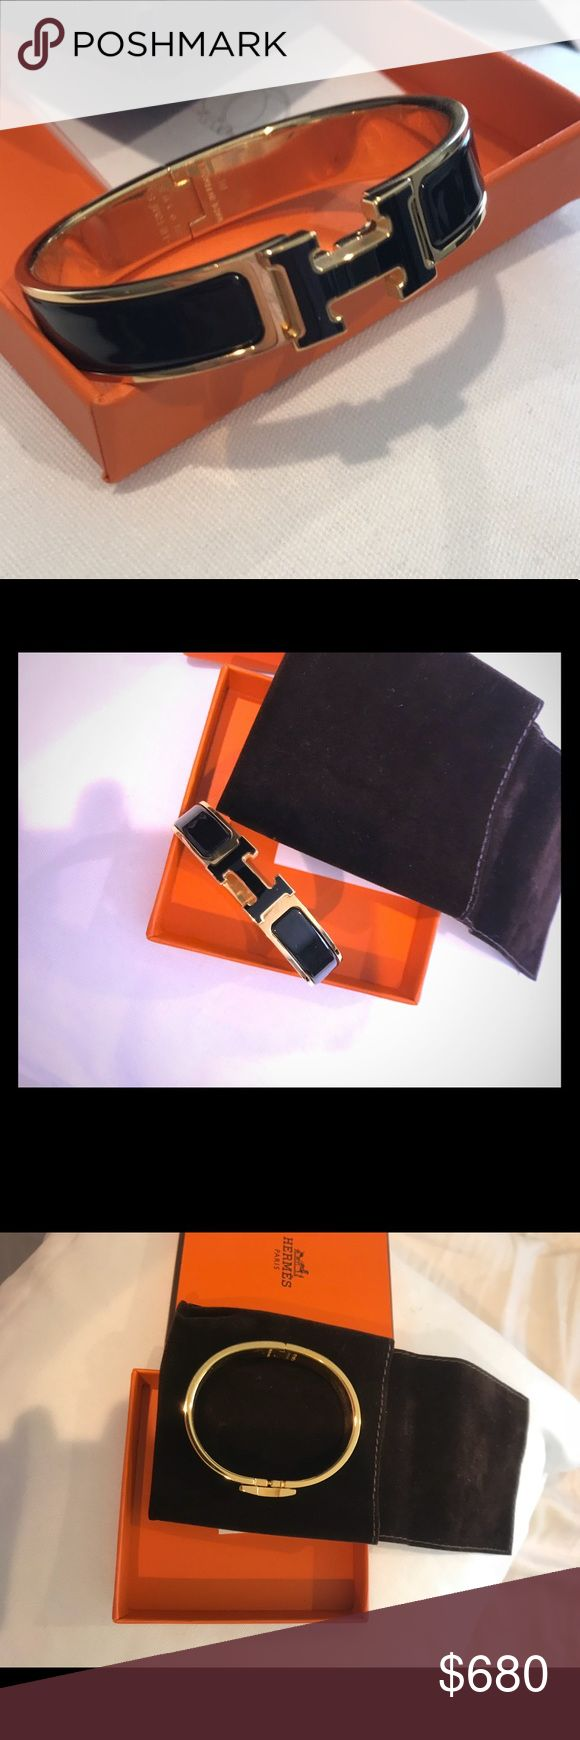 Hermes bracelet purchased in San Francisco Authentic, rare (gold and black) , barely used like new. I don't get a chance do wear it often but it deserves a new home with someone who will love it and wear it! Comes with receipt, box, dust cover, proof of purchase! Hermes Jewelry Bracelets